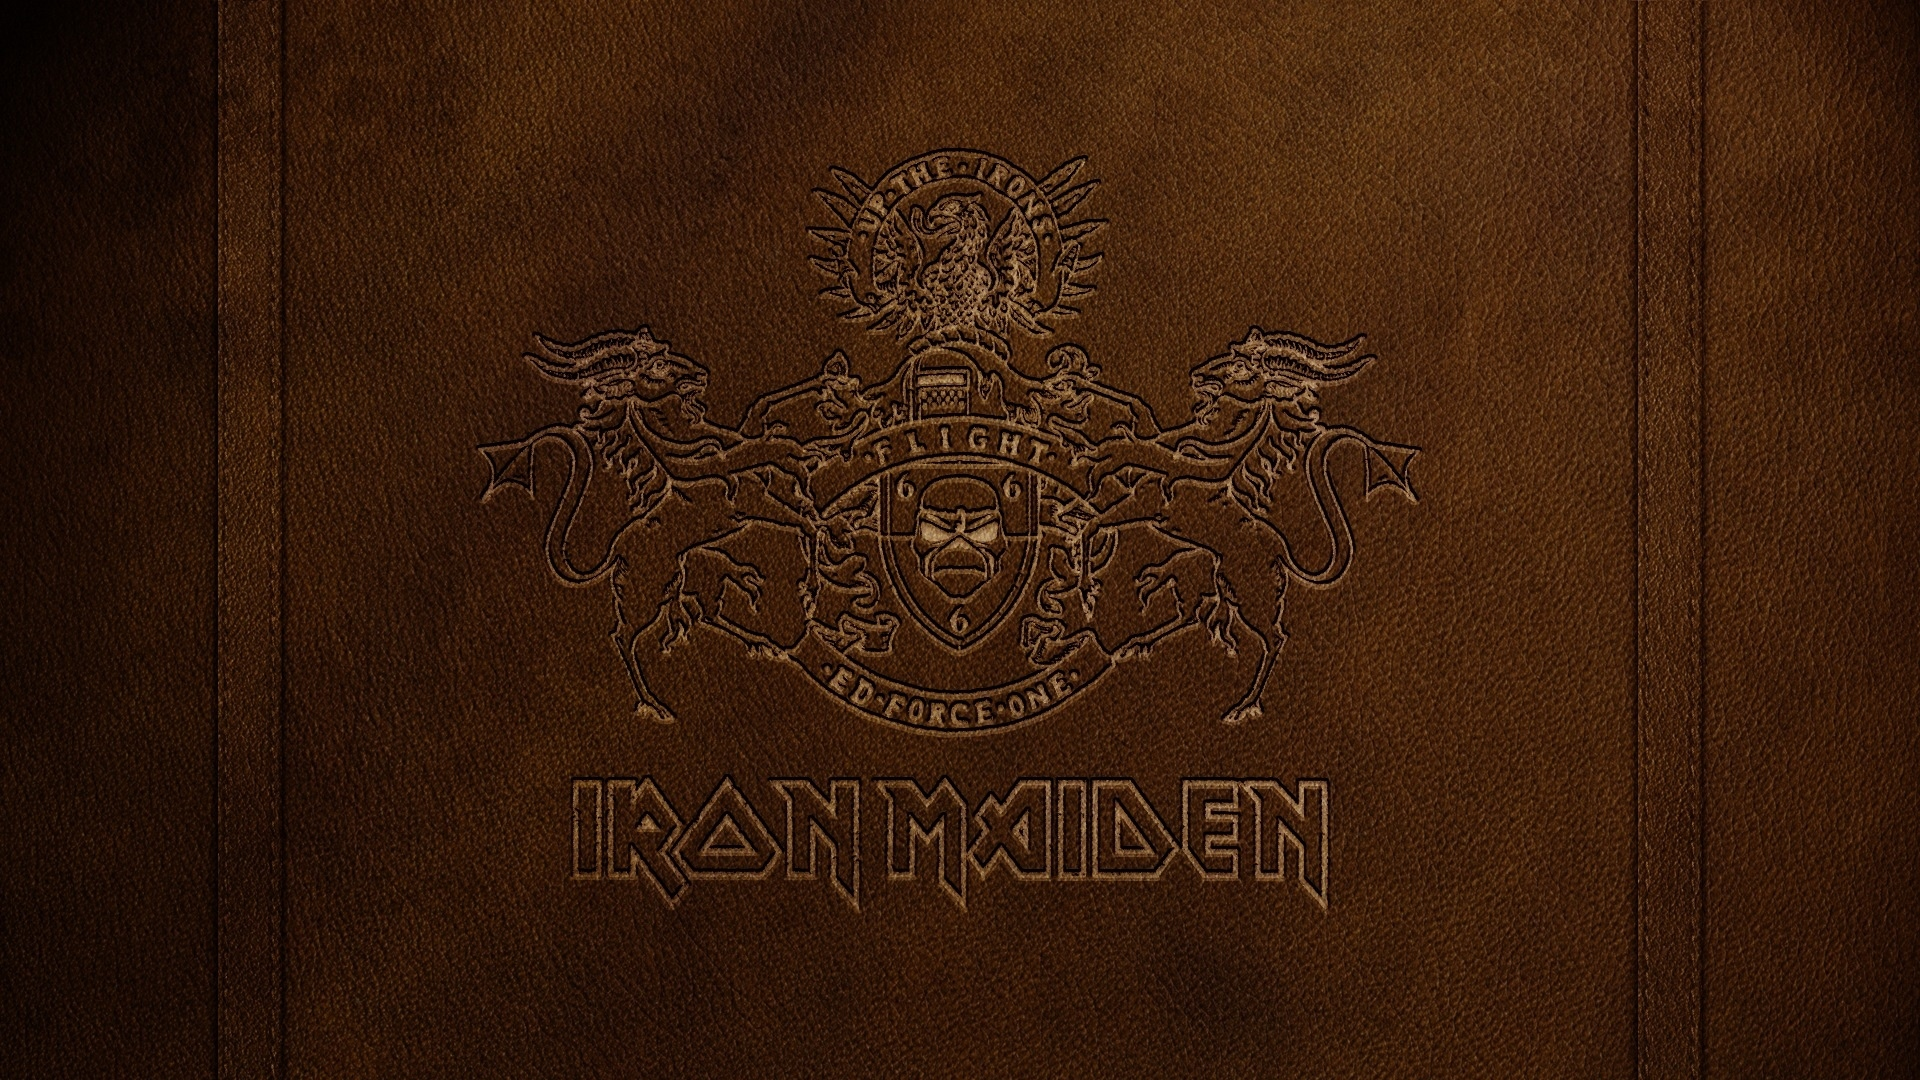 Download Wallpaper 1920x1080 Iron Maiden Letters Symbol Coat Of